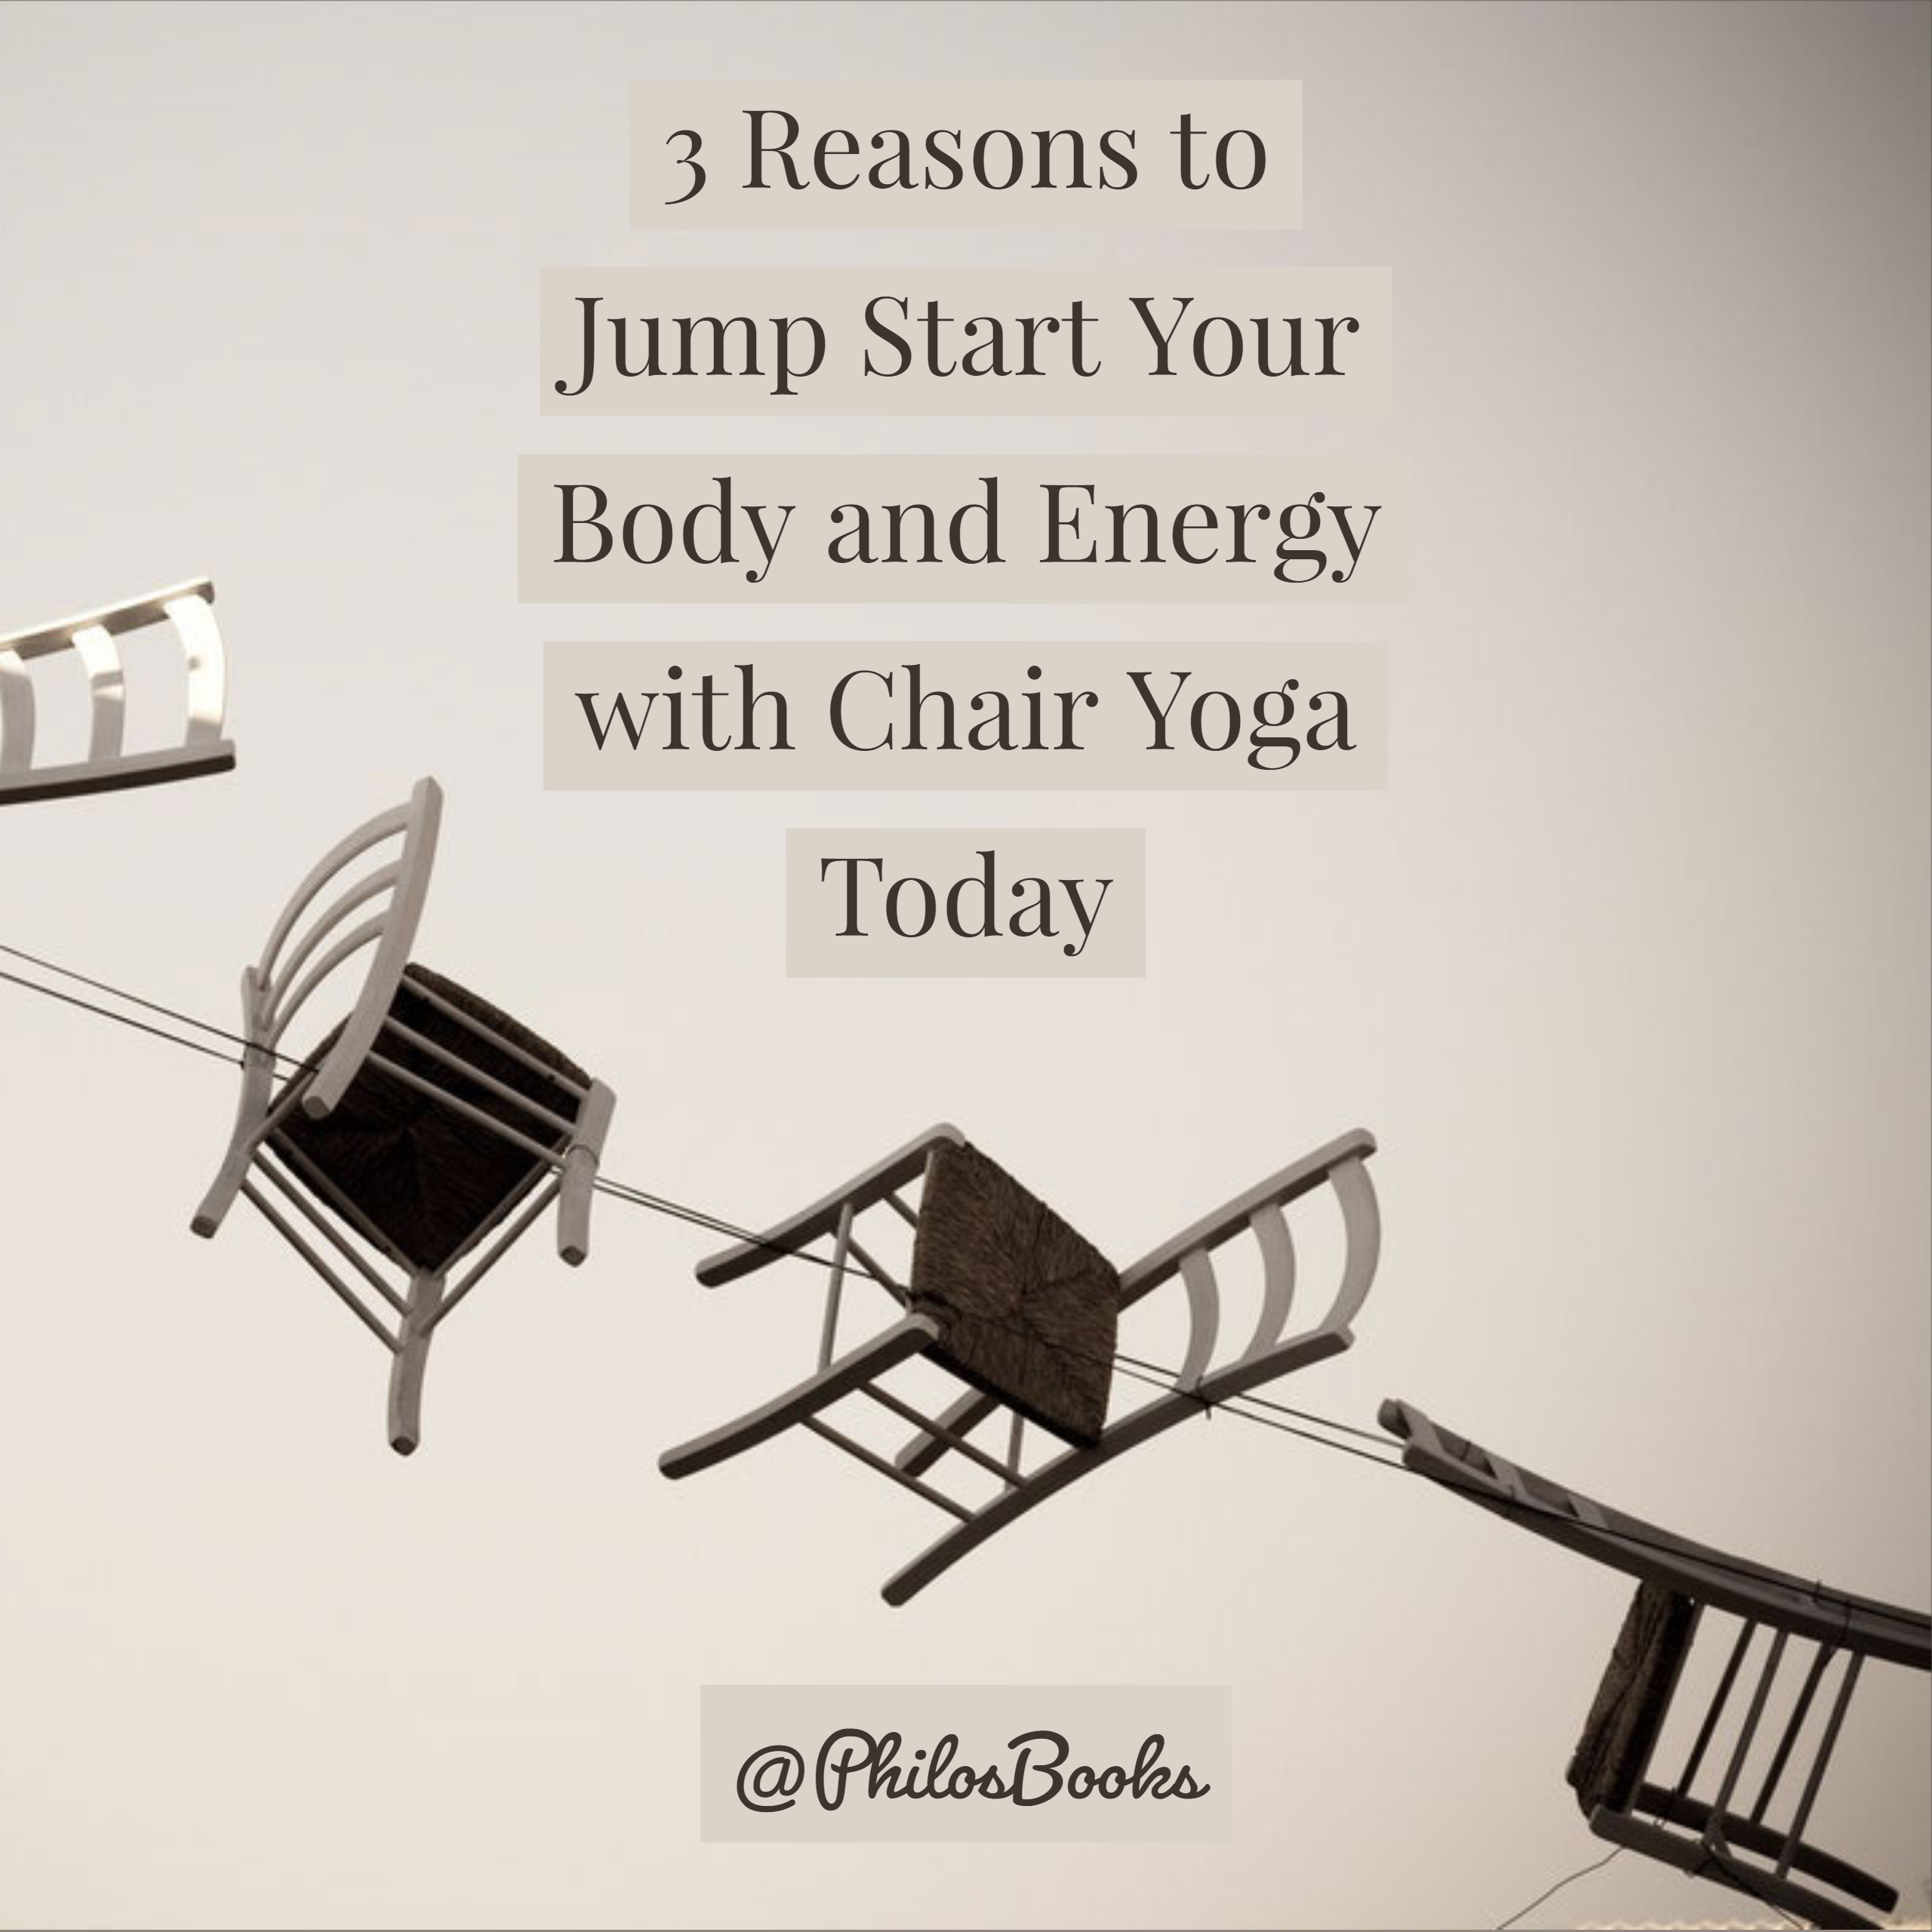 3 Reasons to Jumpstart Your Body and Energy with Chair Yoga Today